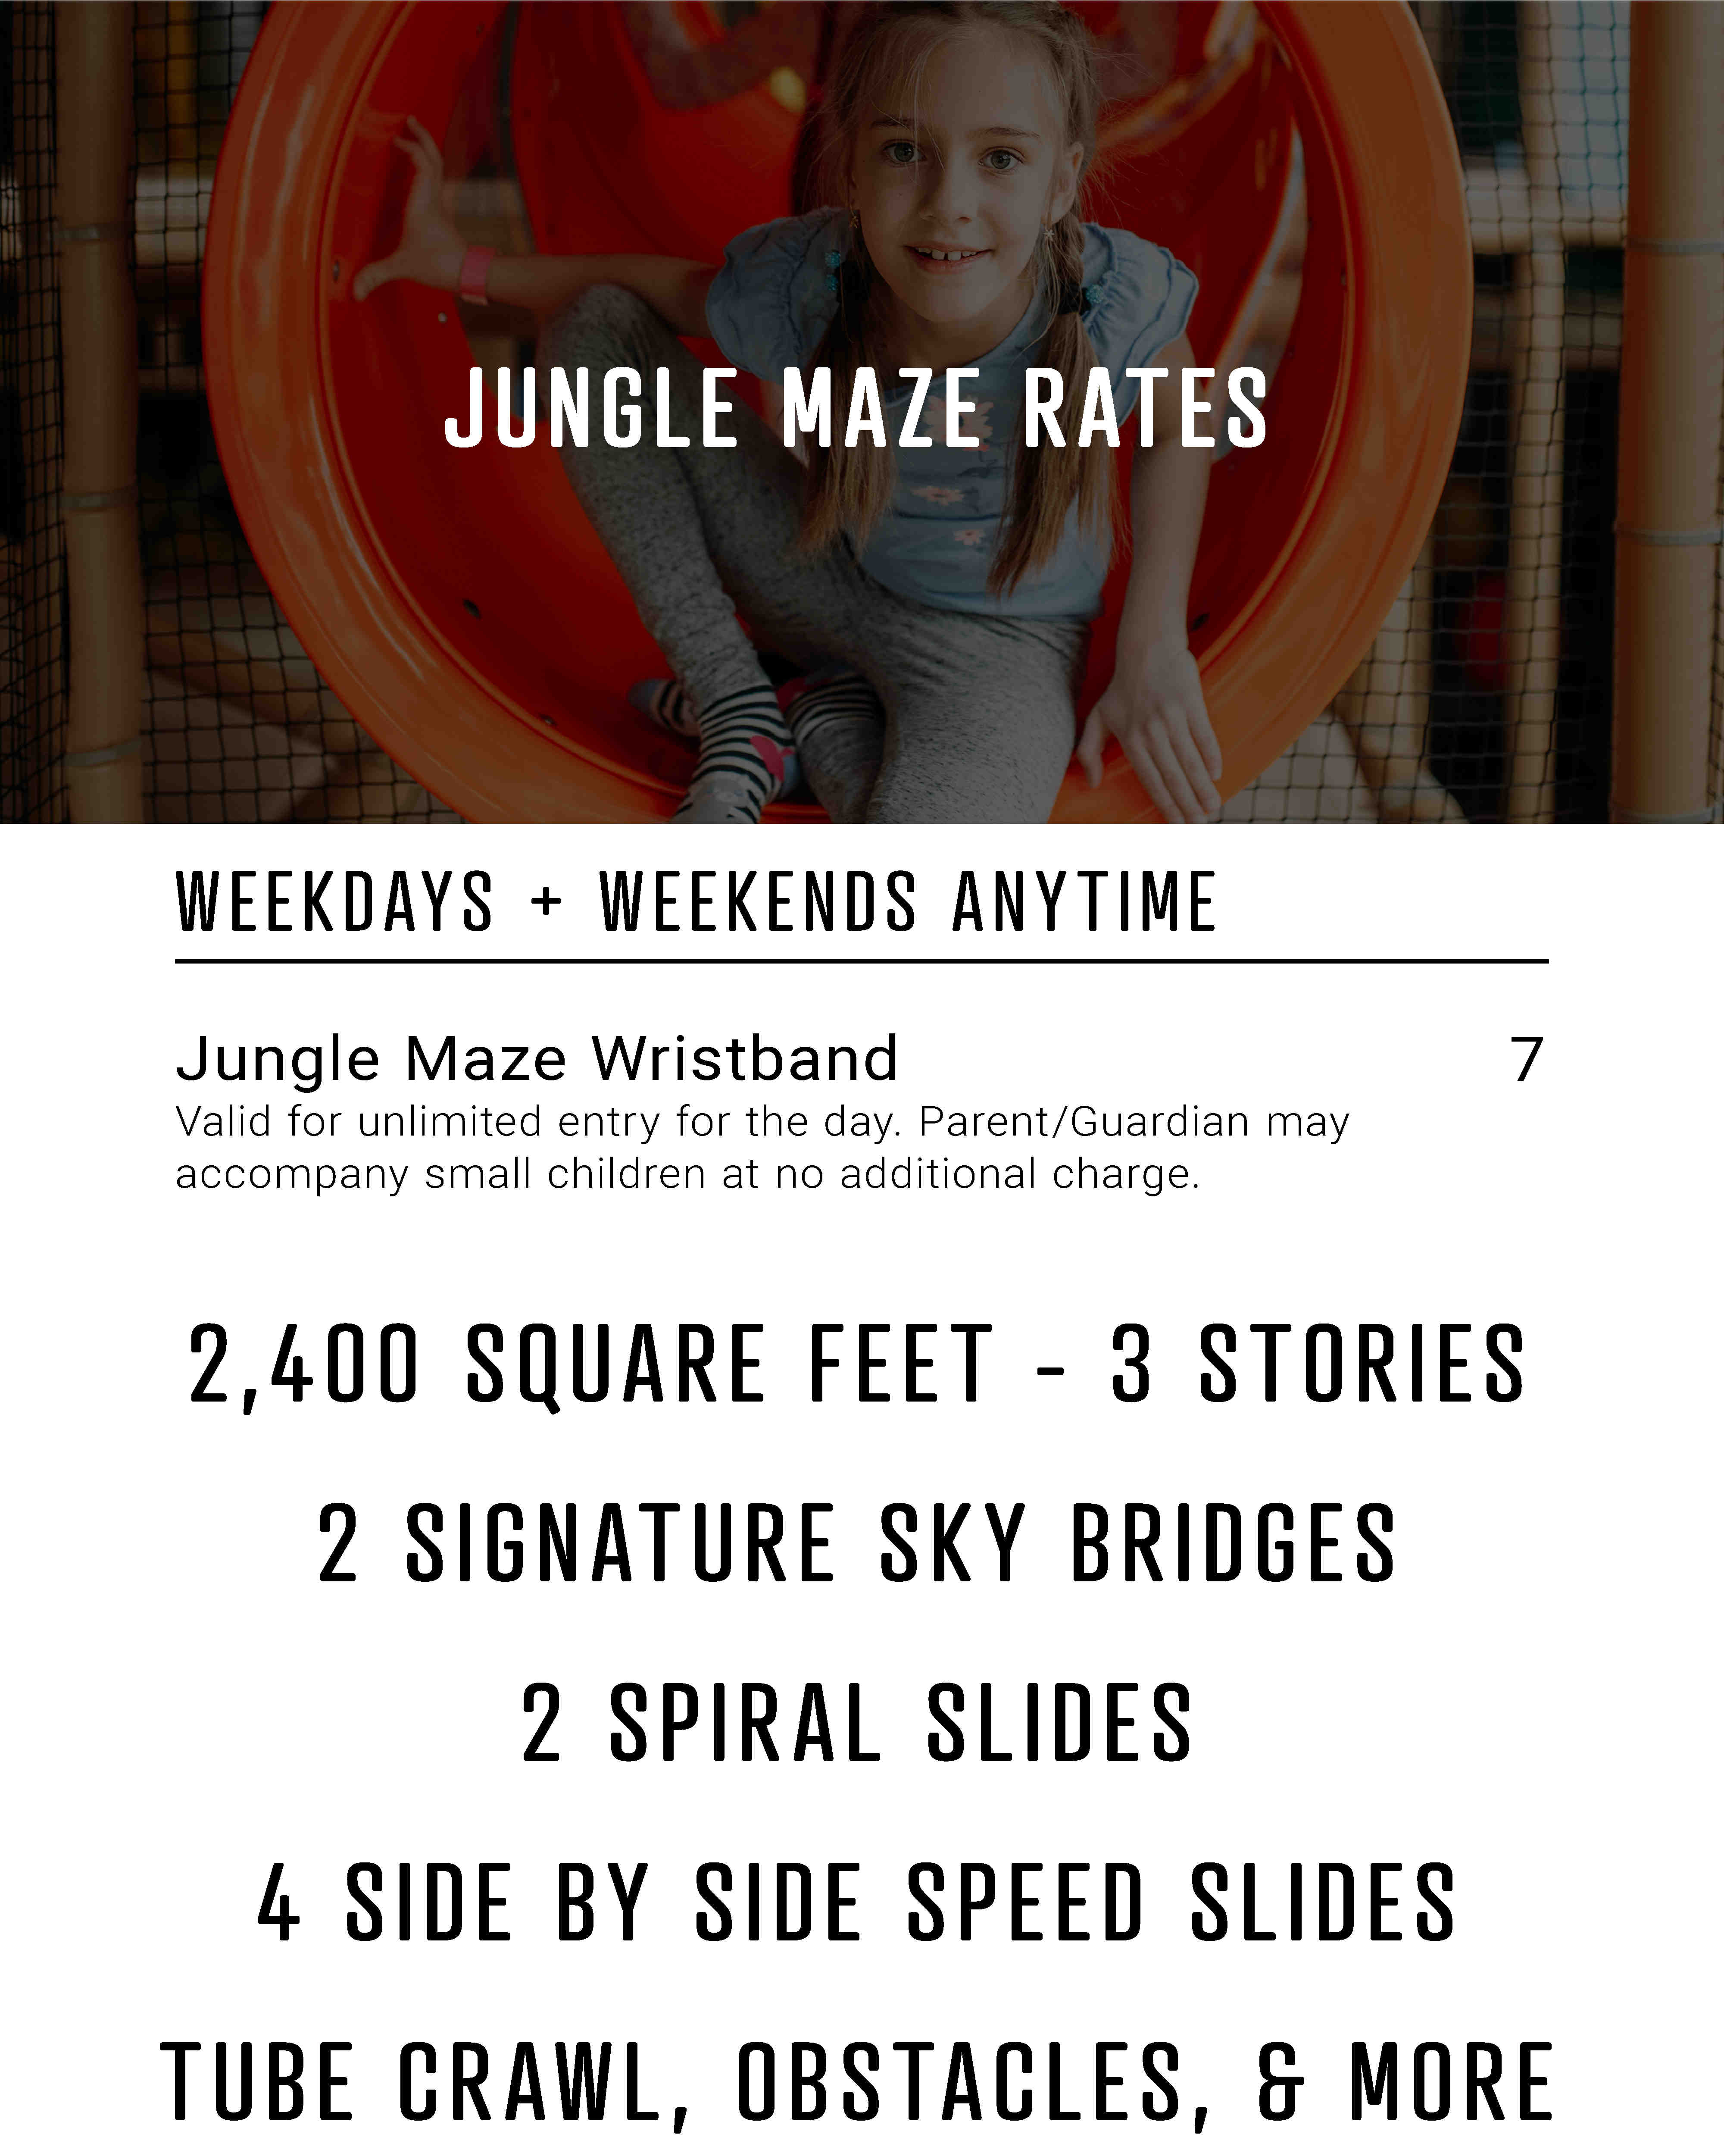 Jungle maze play structure rates